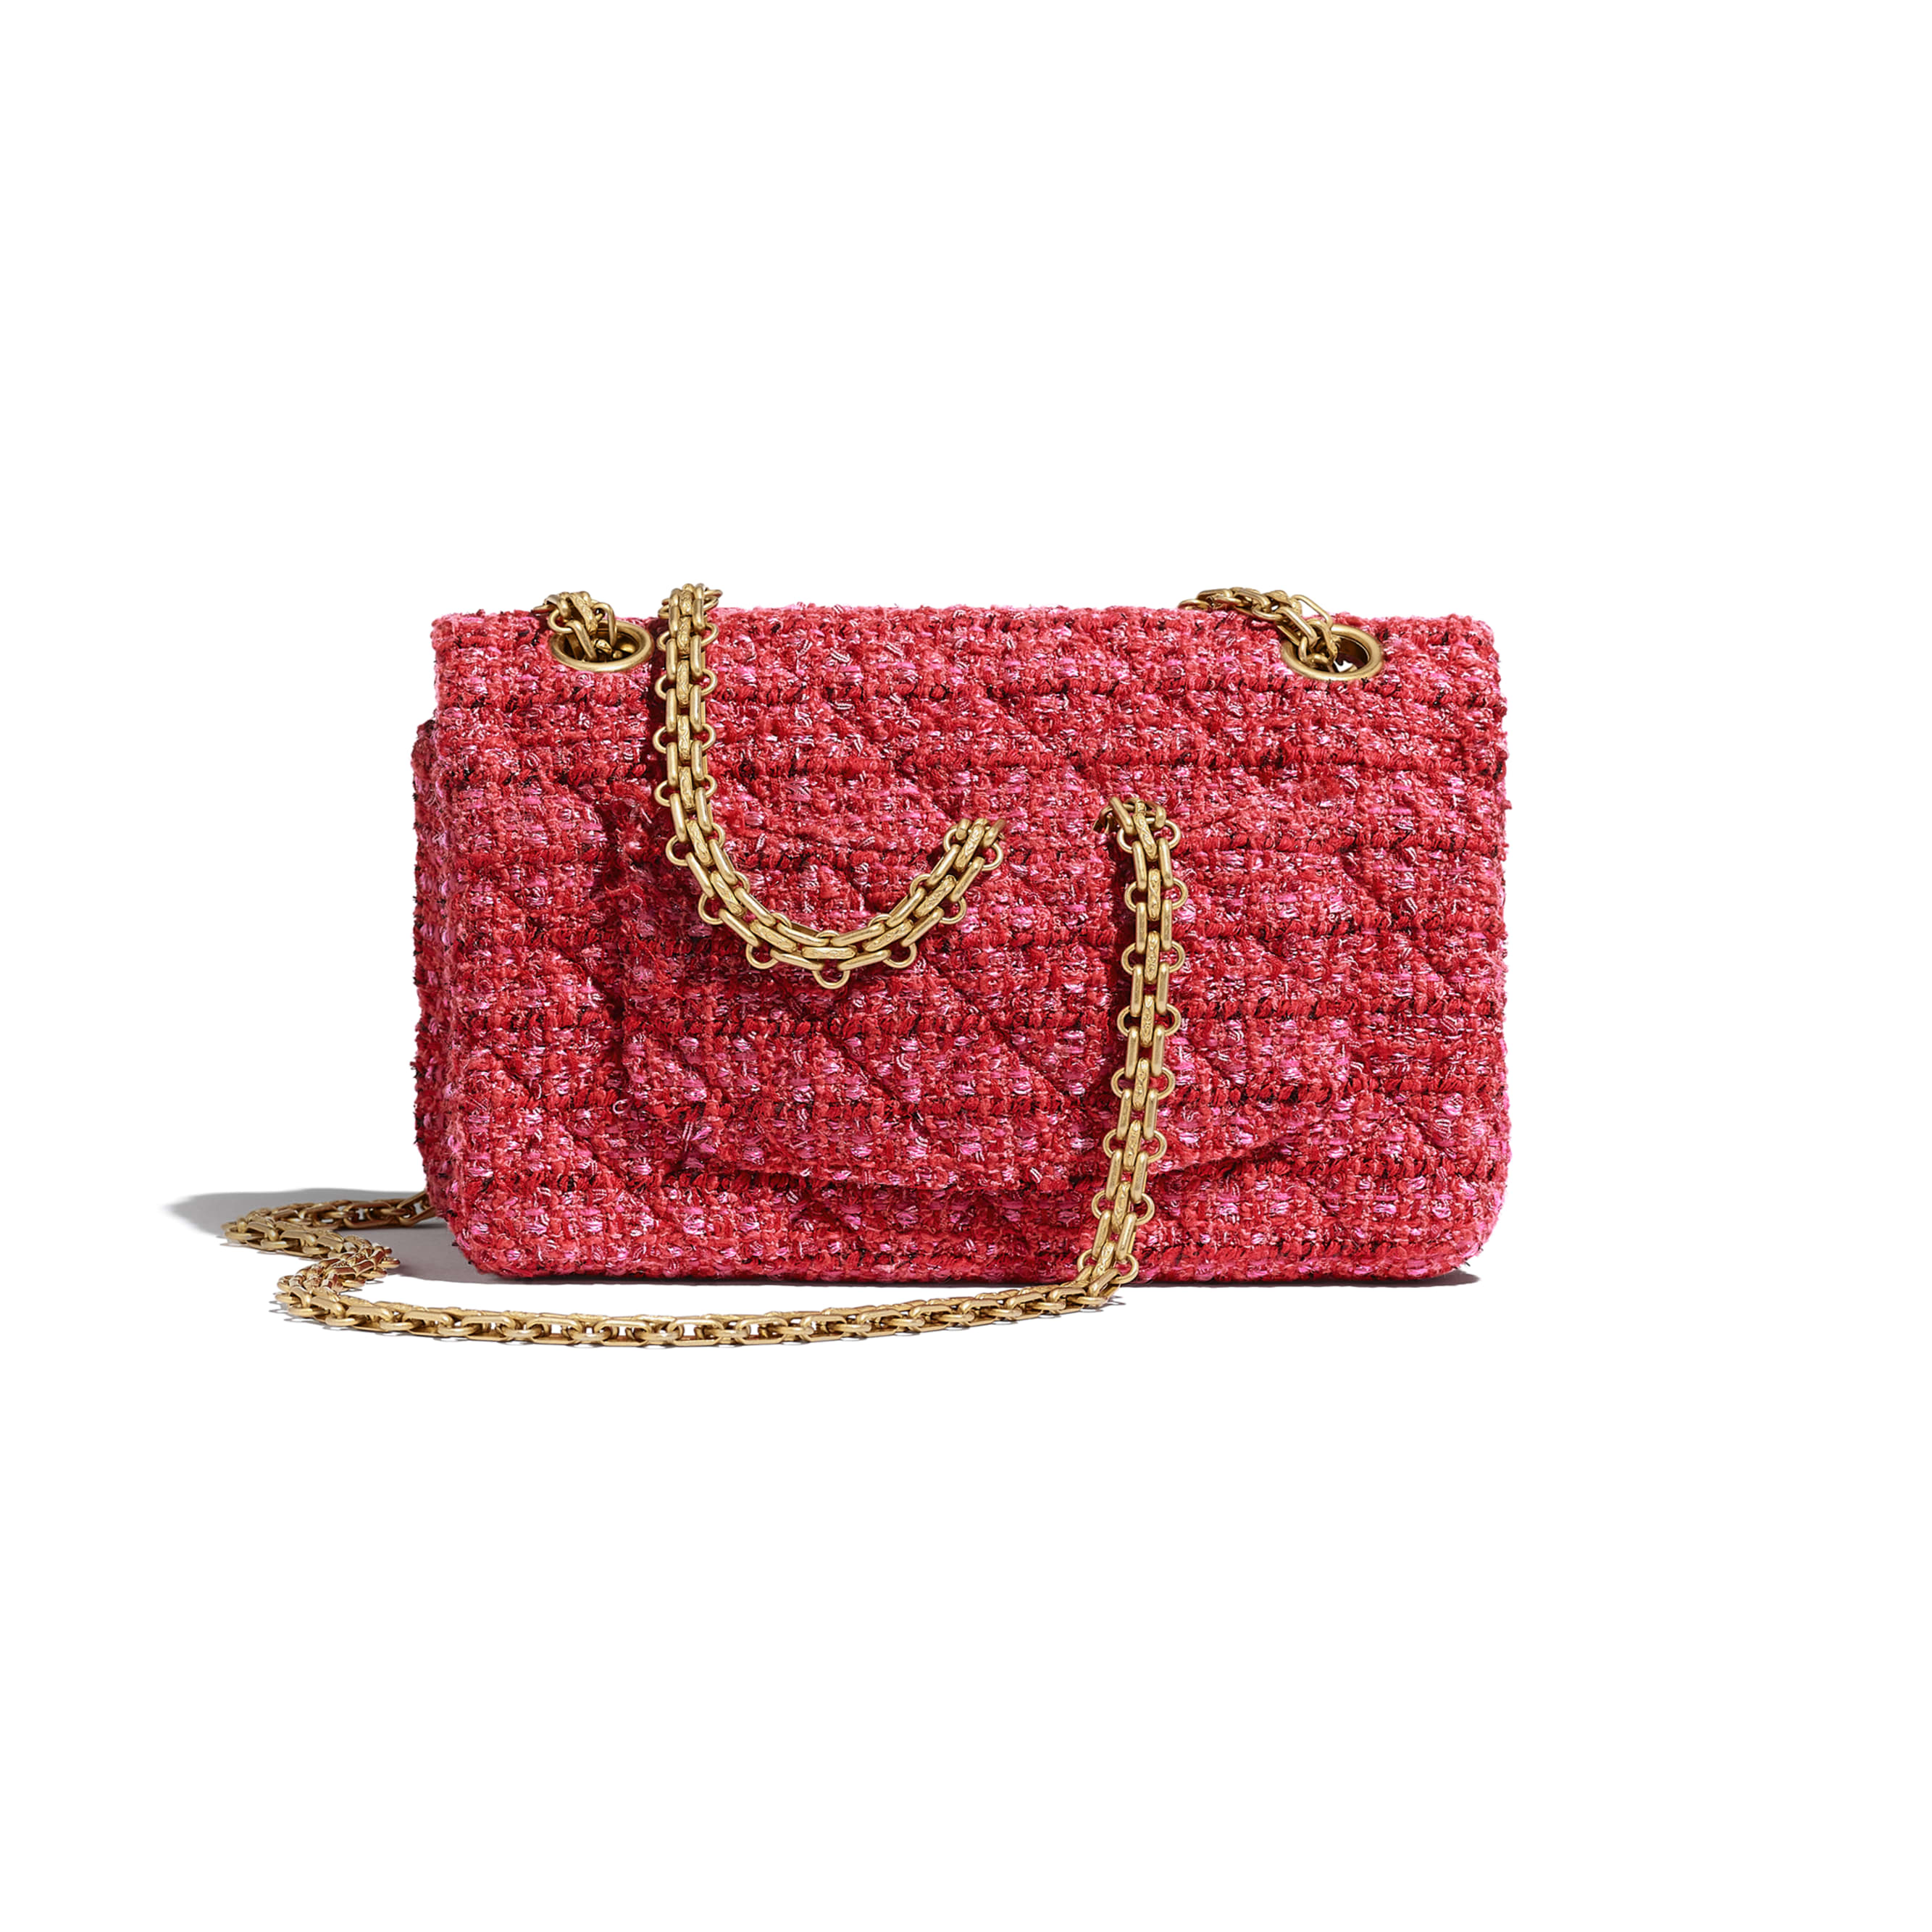 Mini 2.55 Handbag - Red, Ecru & Black - Tweed & Gold Metal - CHANEL - Alternative view - see standard sized version